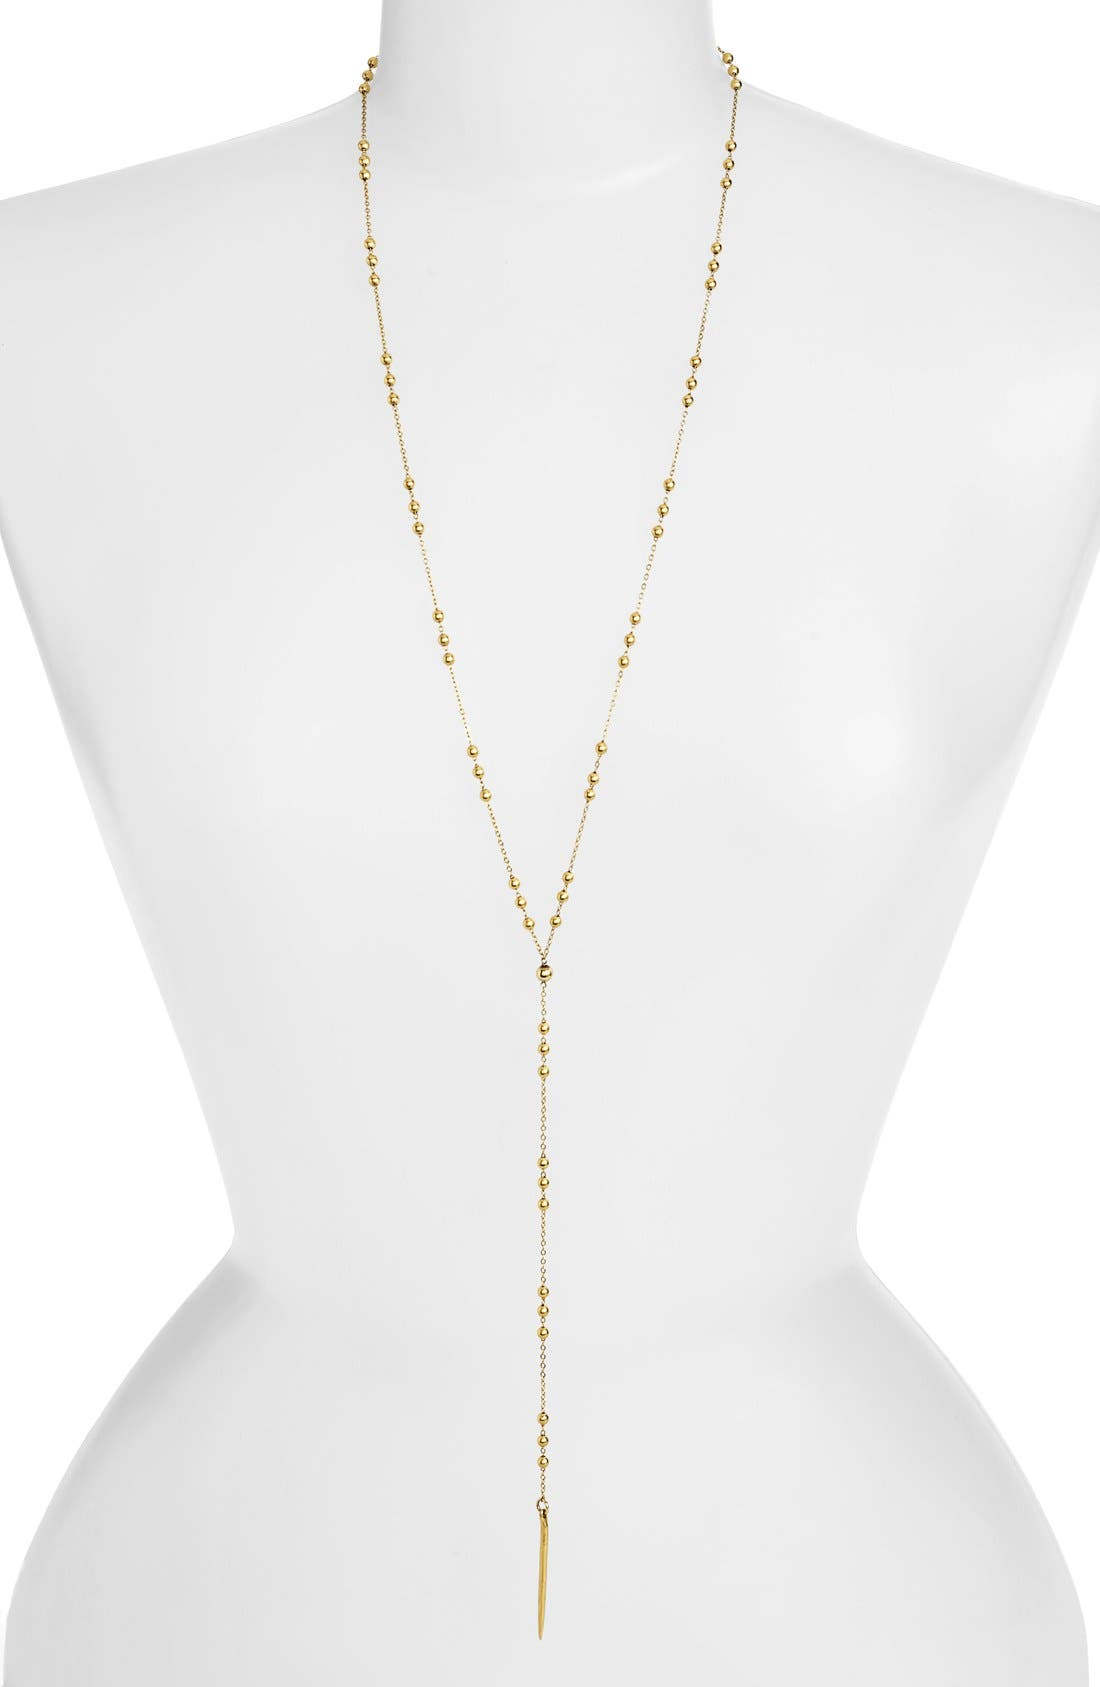 Main Image - Dogeared Long Y-Necklace